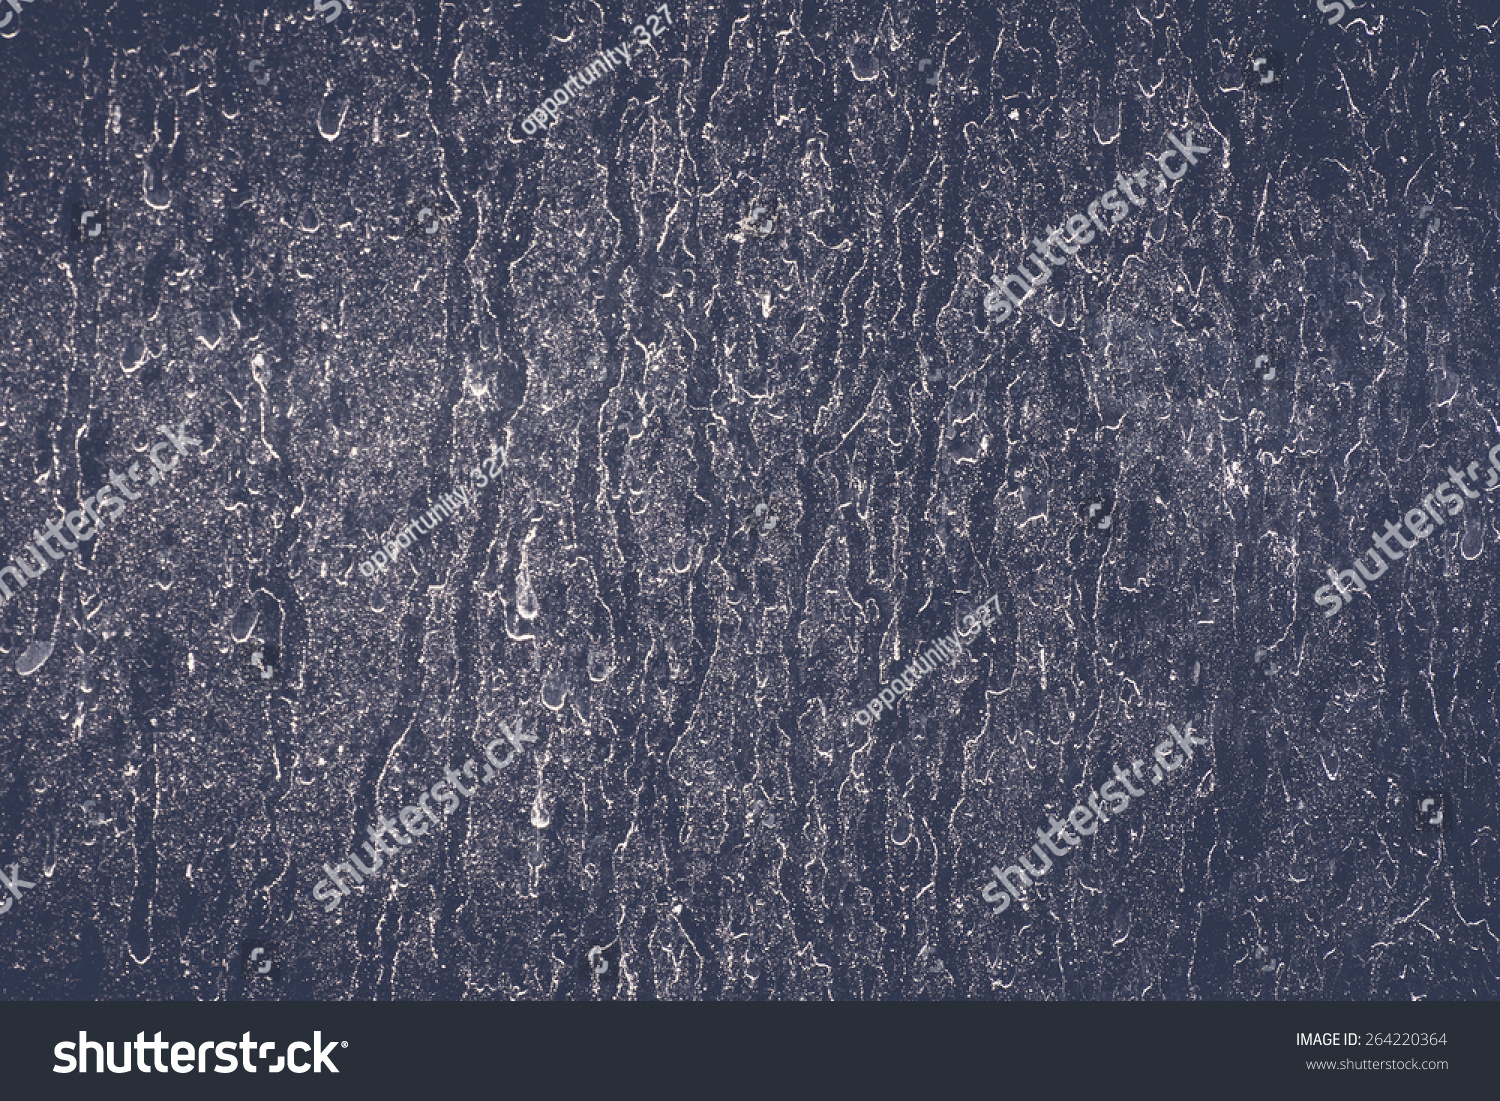 Water Slough On The Sheet Glass Stock Photo 264220364